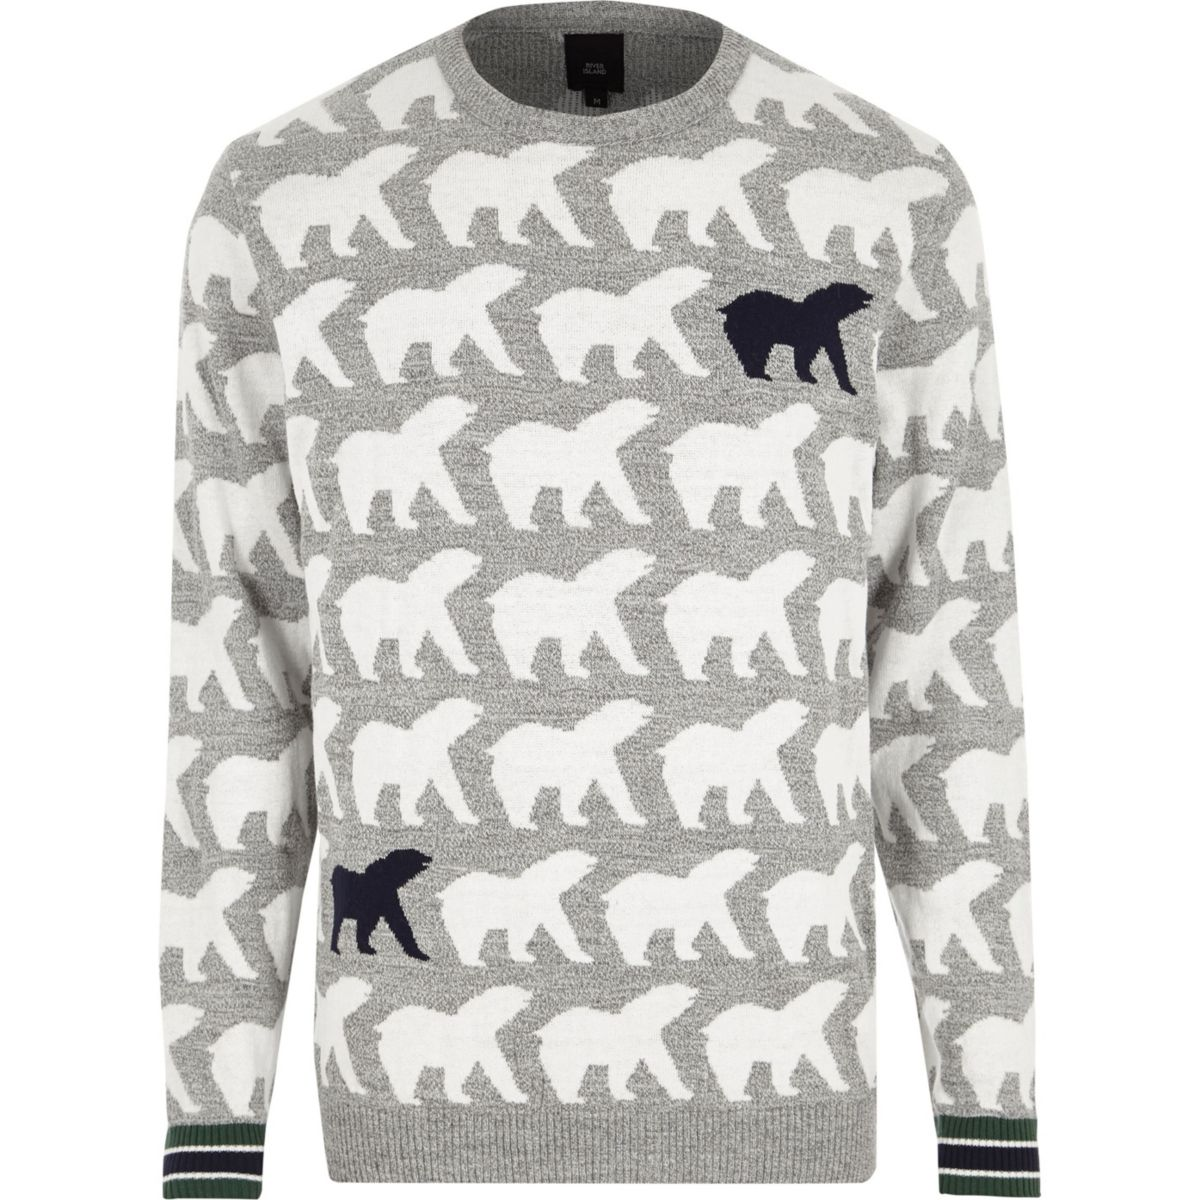 Grey polar bear knit Christmas sweater